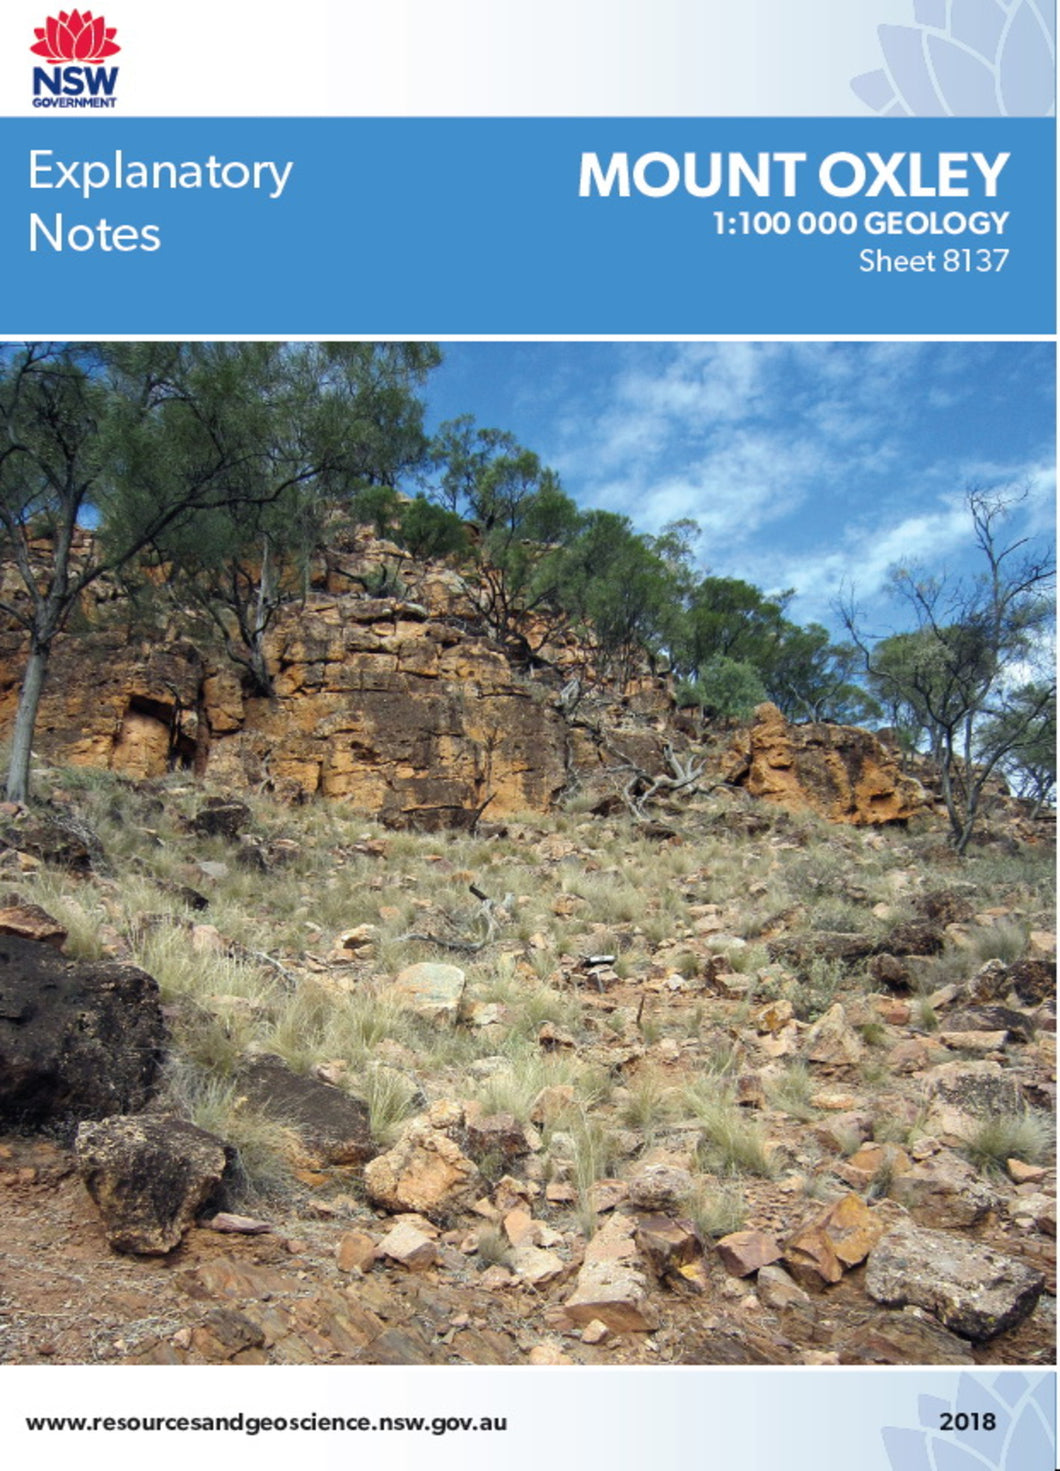 Image of Mount Oxley Explanatory Notes book cover